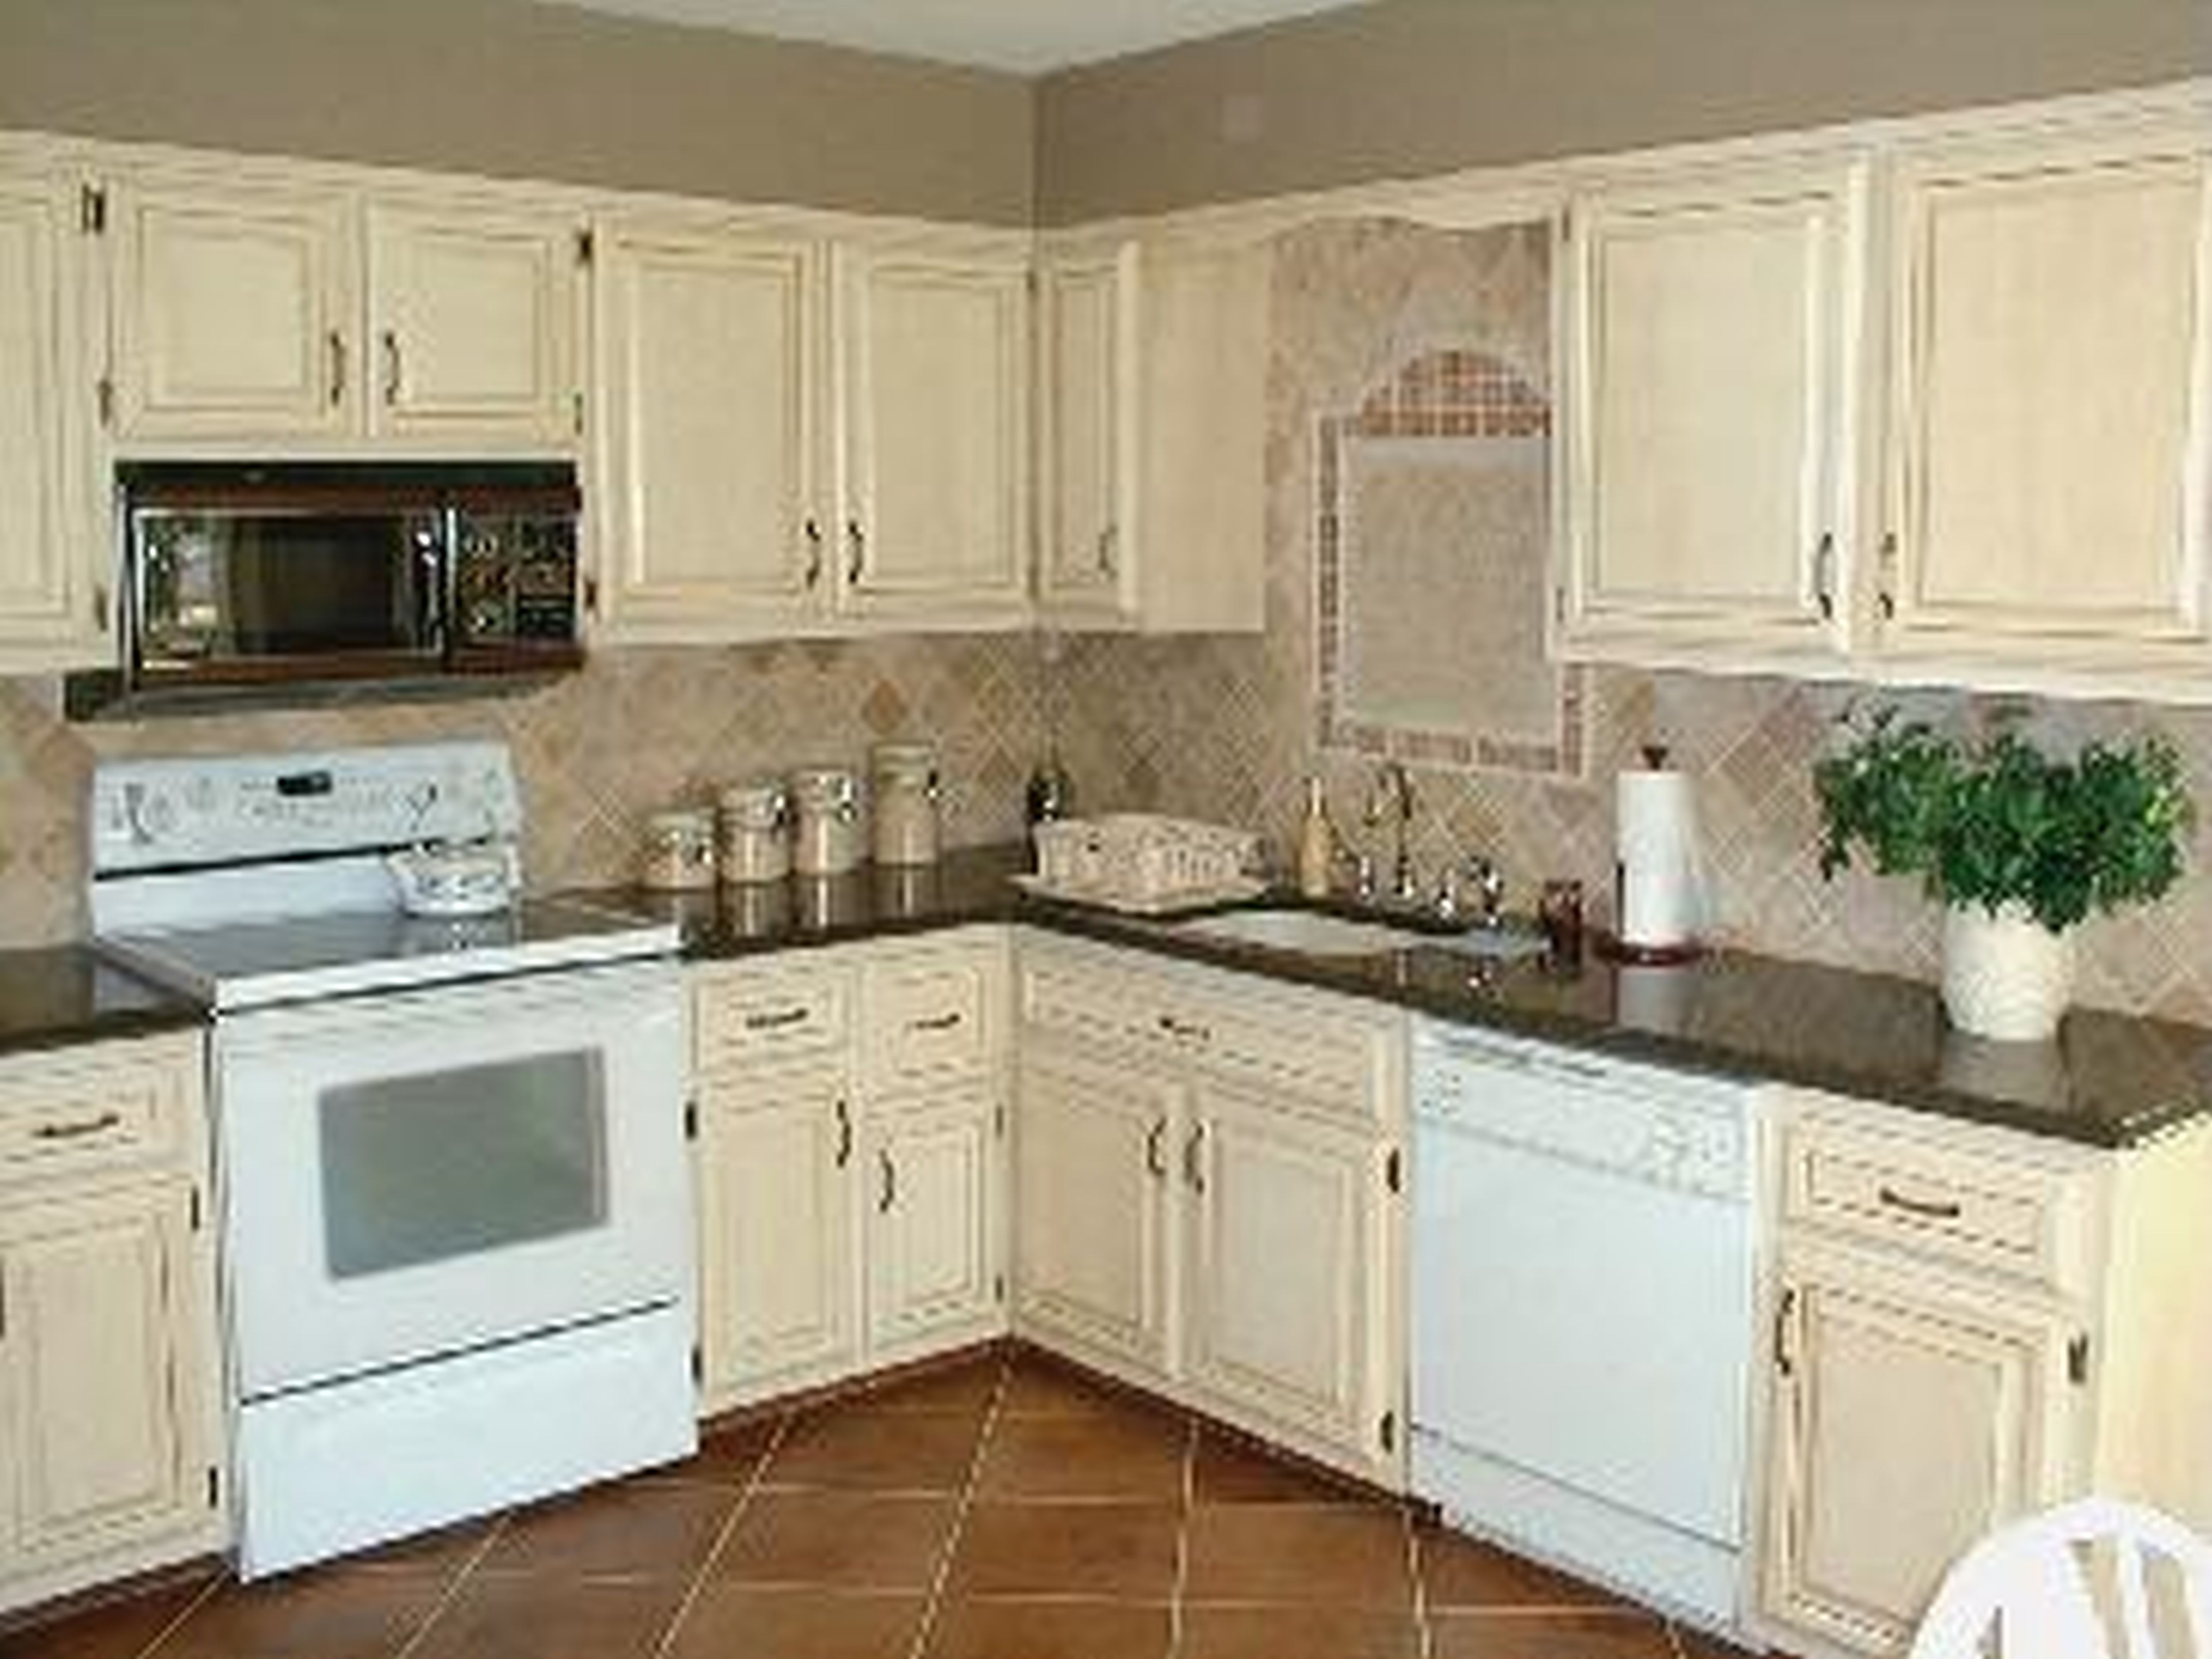 Painting Kitchen Cabinets 2017 Furniture Designs Antique White Furniture Diy Diy Antique